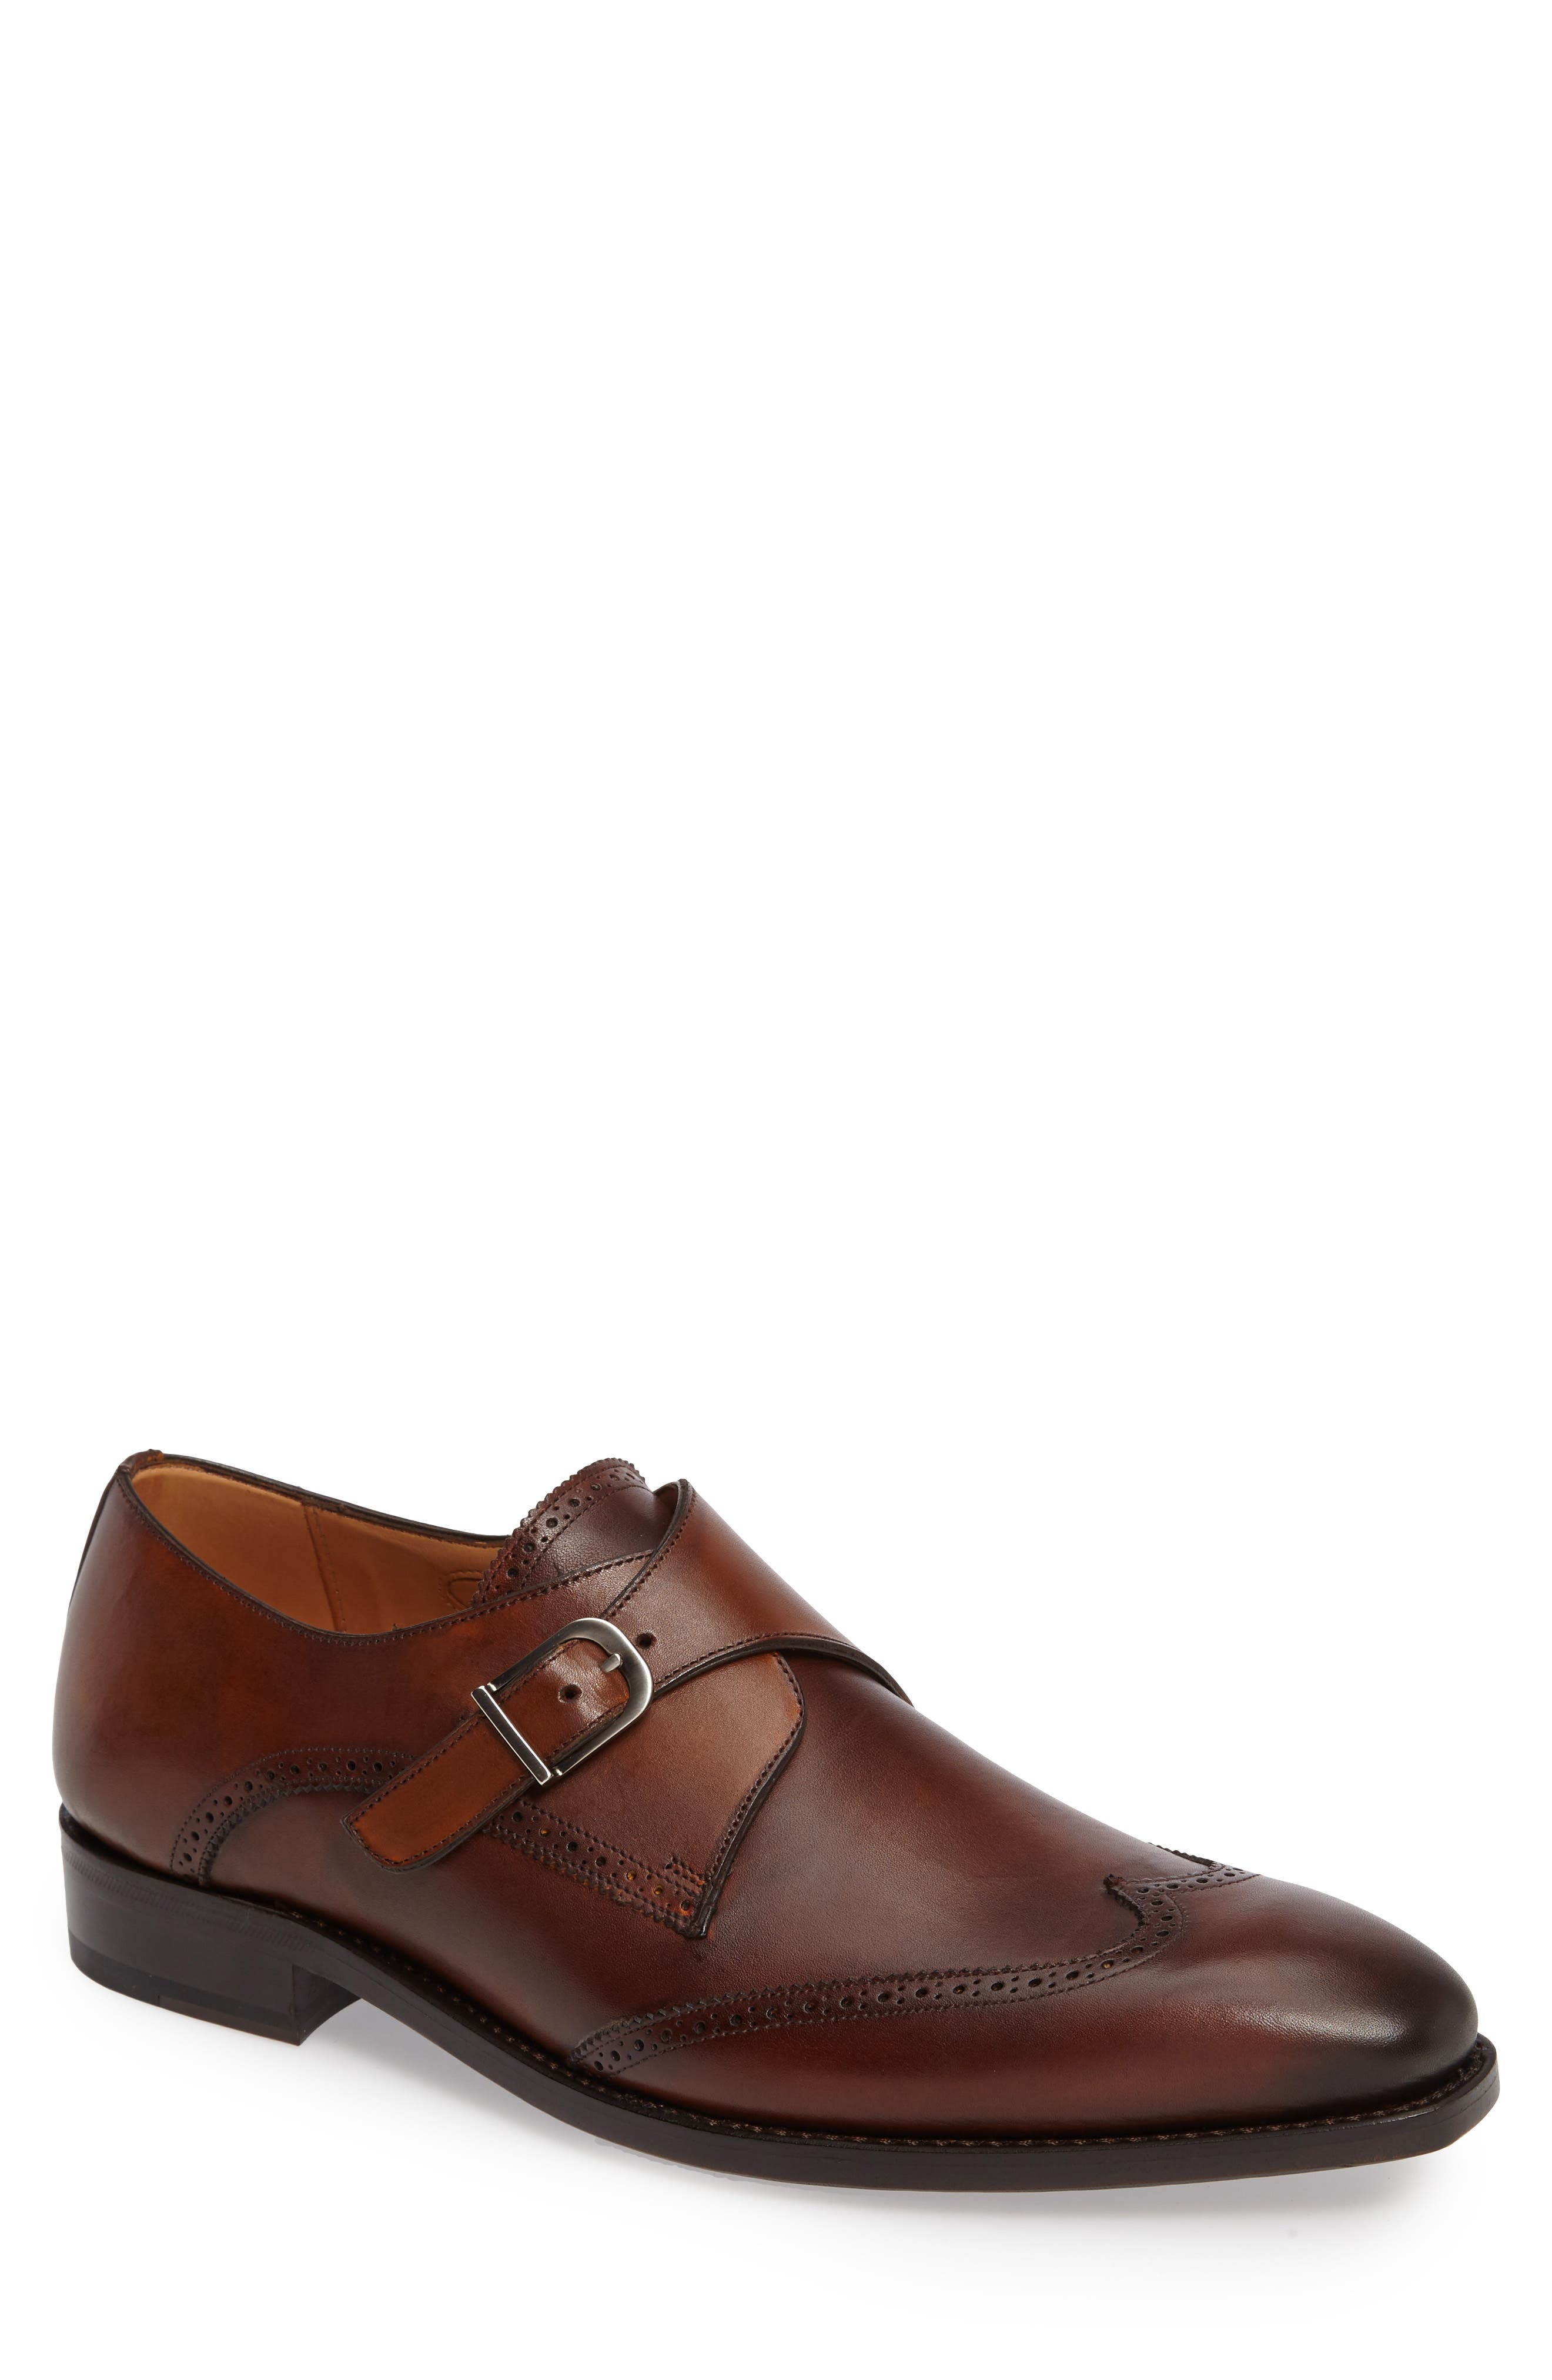 Impronta by Mezlan G121 Wingtip Monk Strap Shoe (Men)